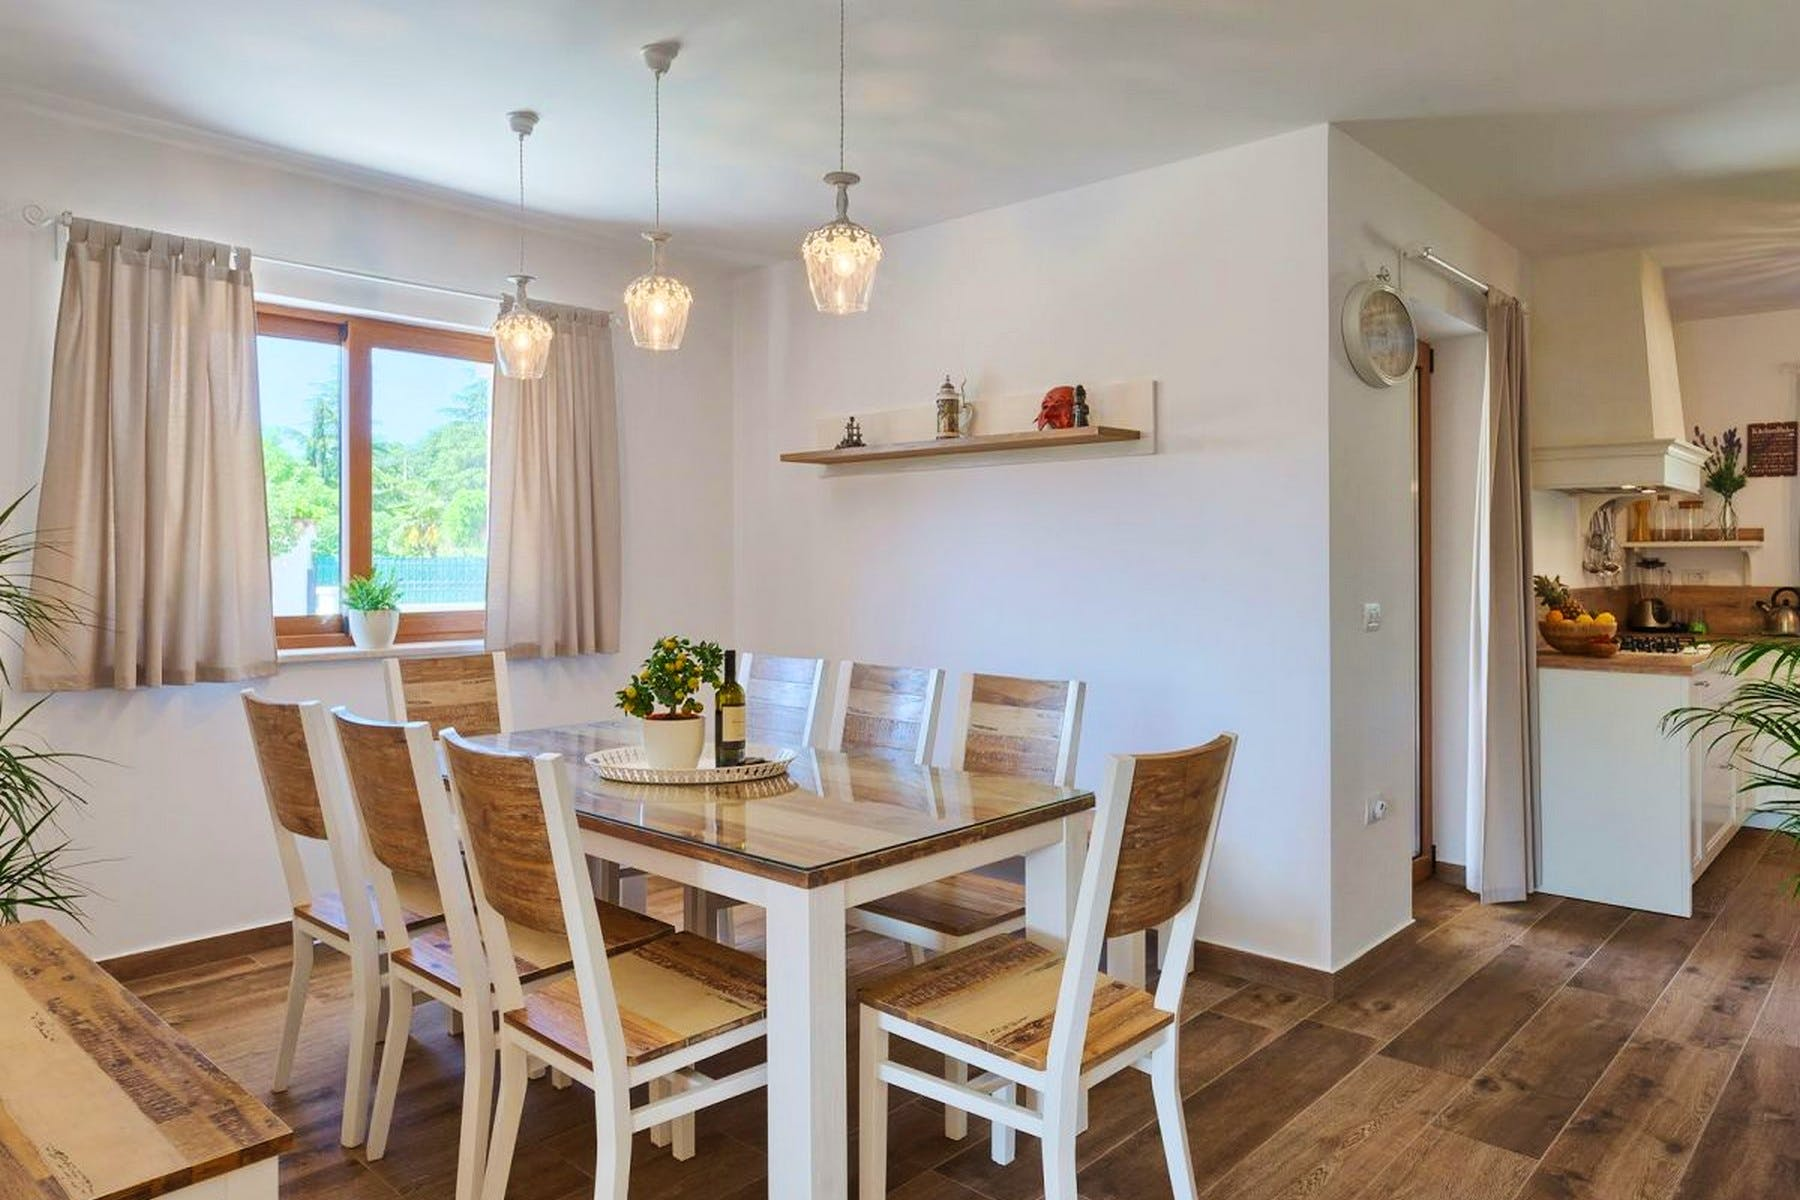 Dining room with table for 8 people